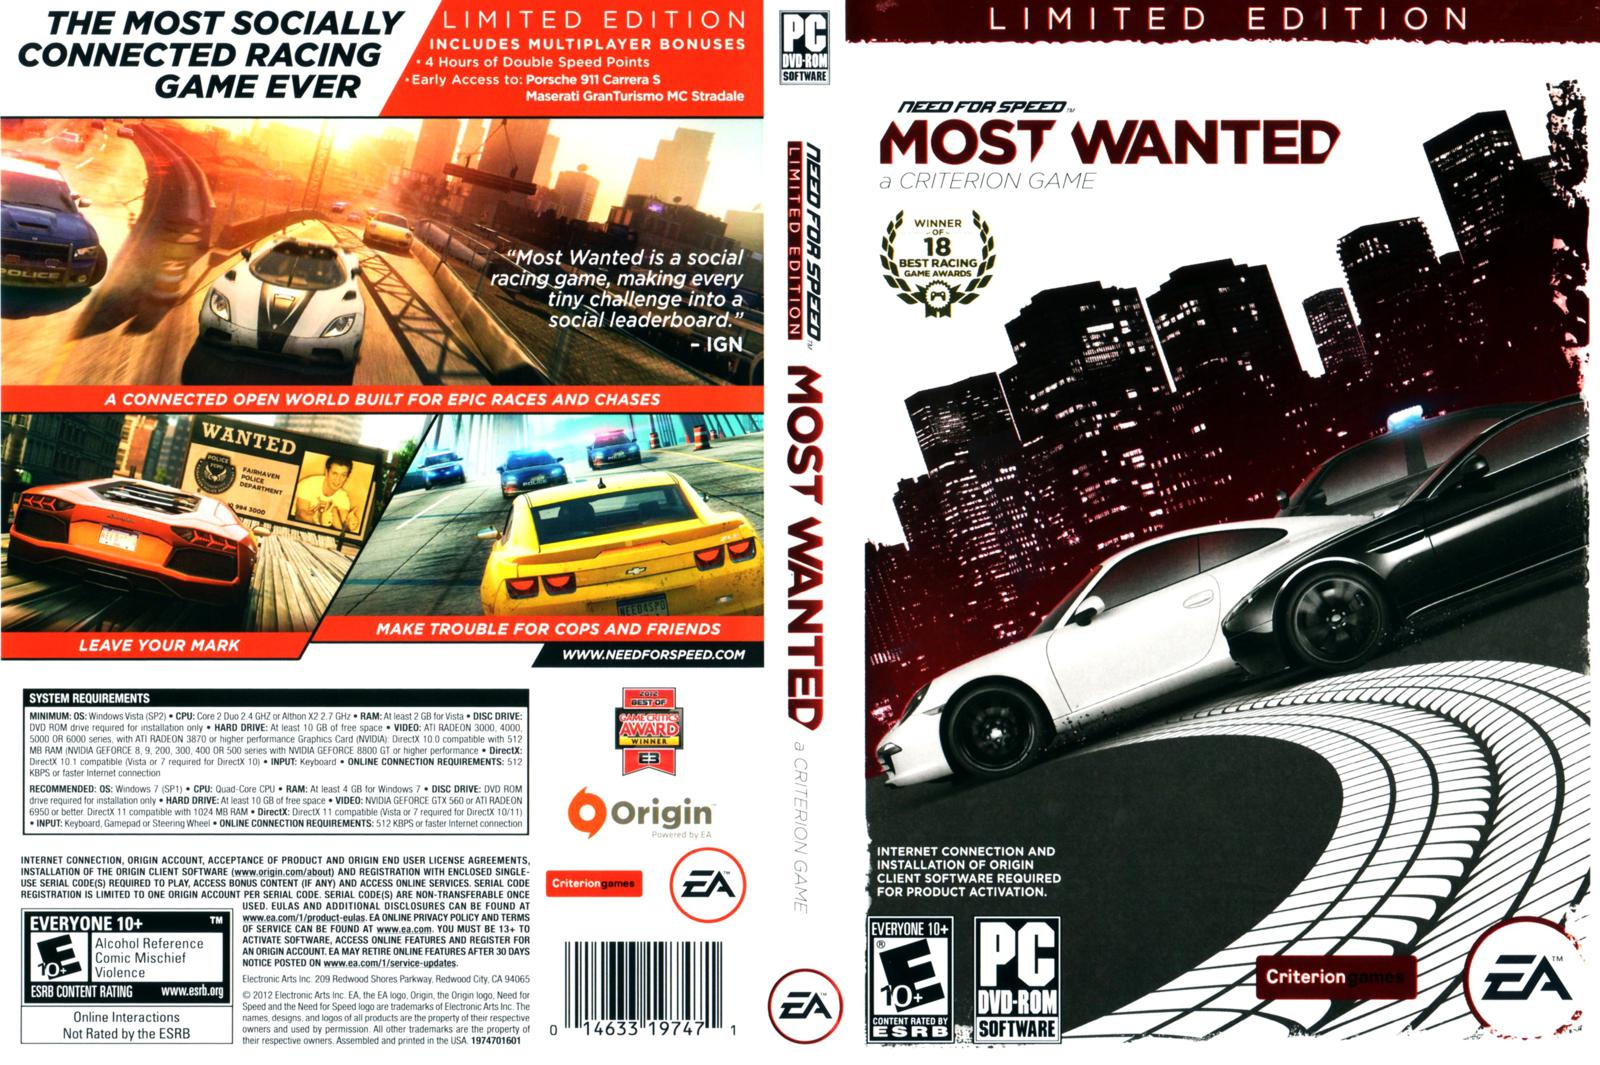 need for speed most wanted: limited edition (2012) PCH